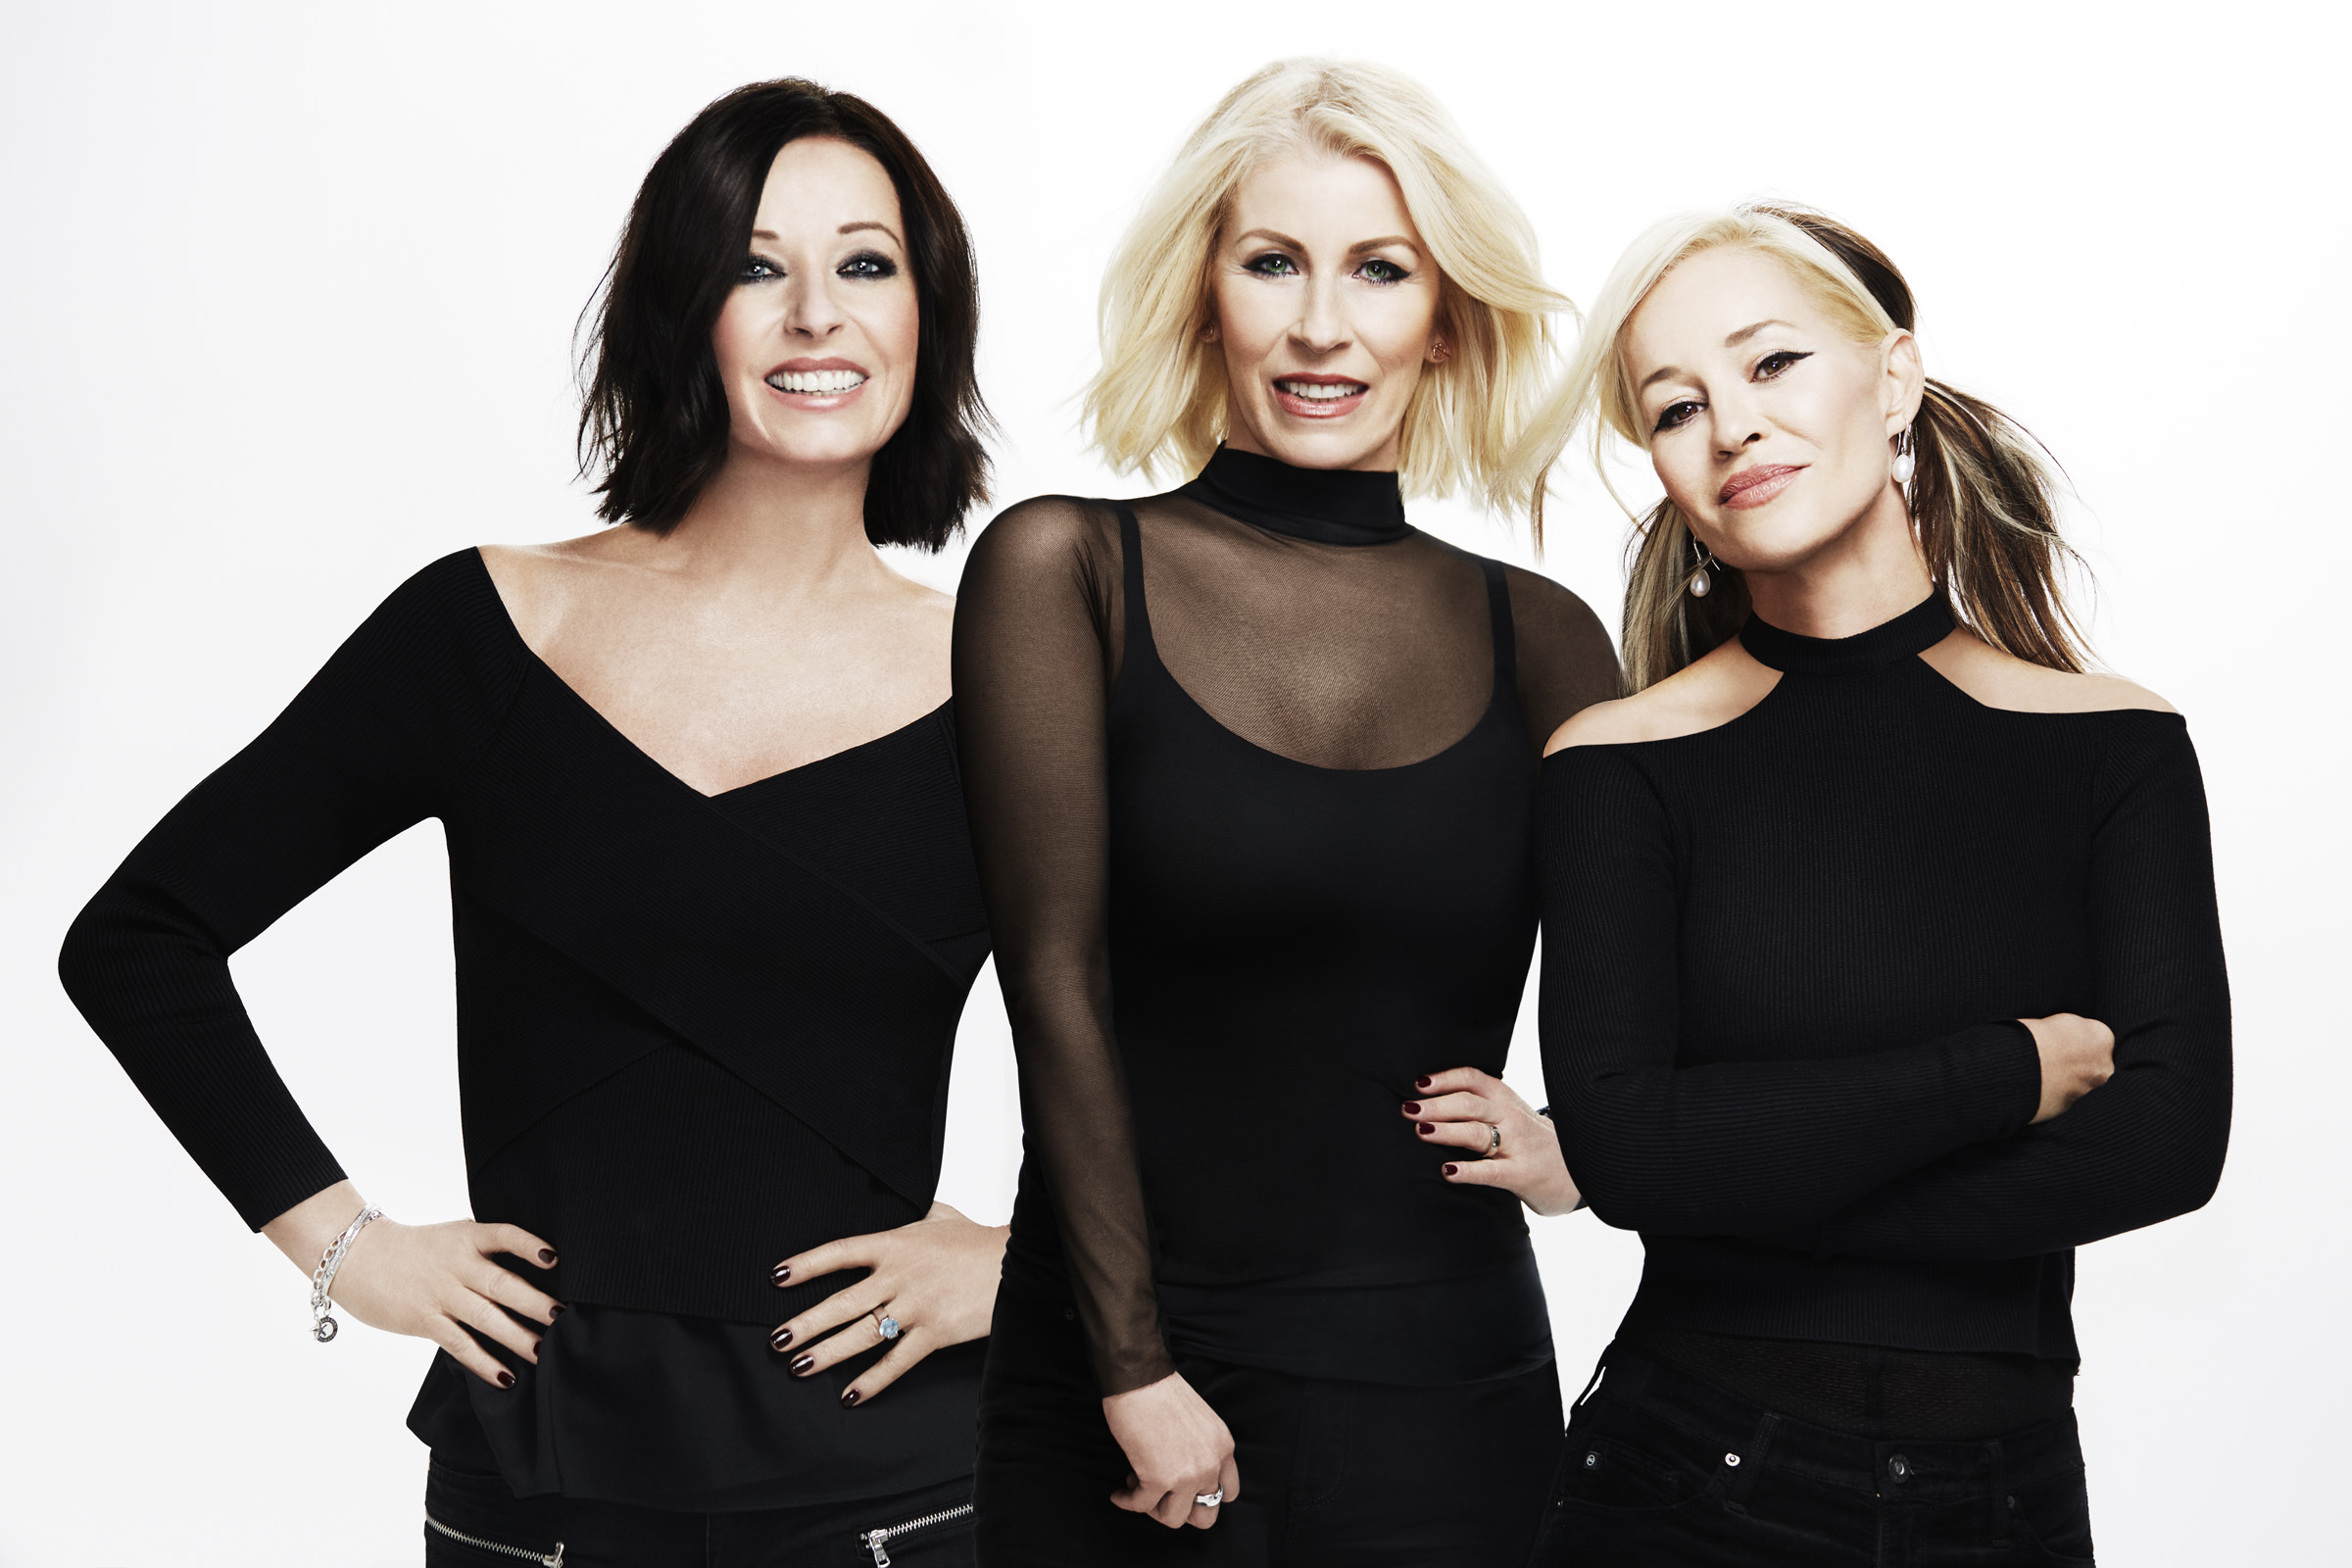 The original line-up of Bananarama are bringing their first ever tour together to Birmingham Arena on November 23.